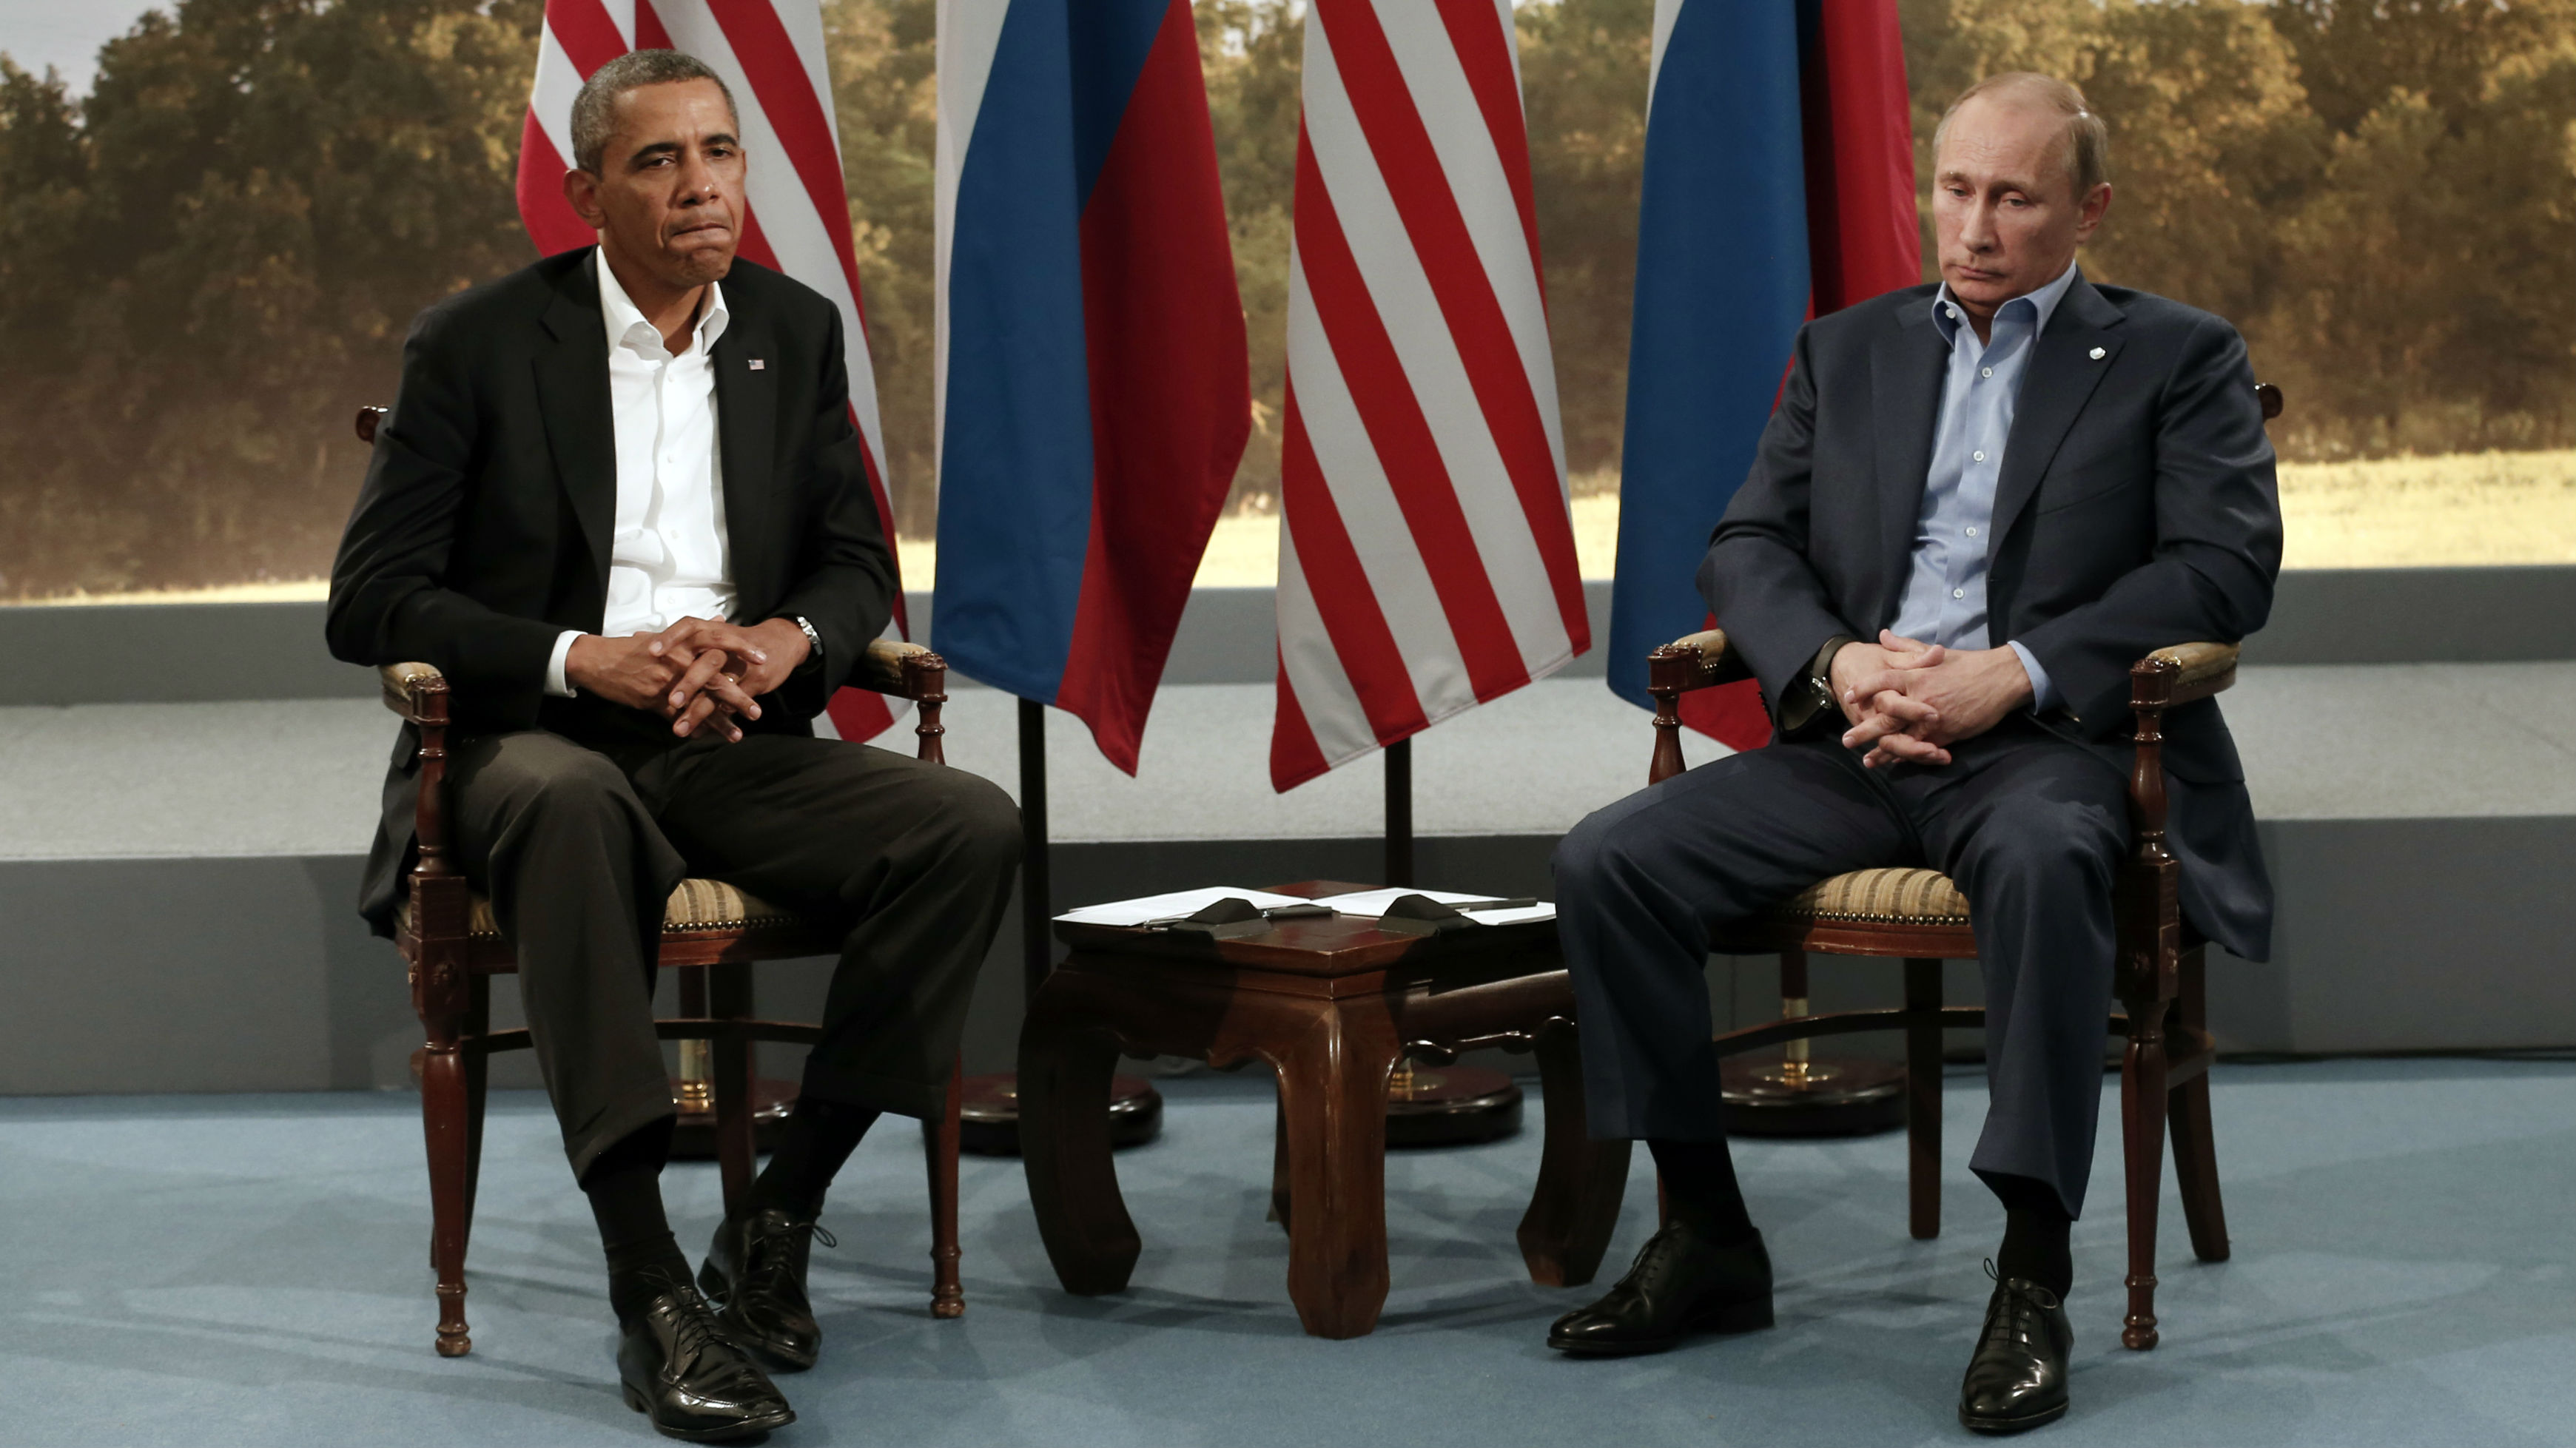 President Obama and President Putin sit in front of two American flags and two Russian flags.